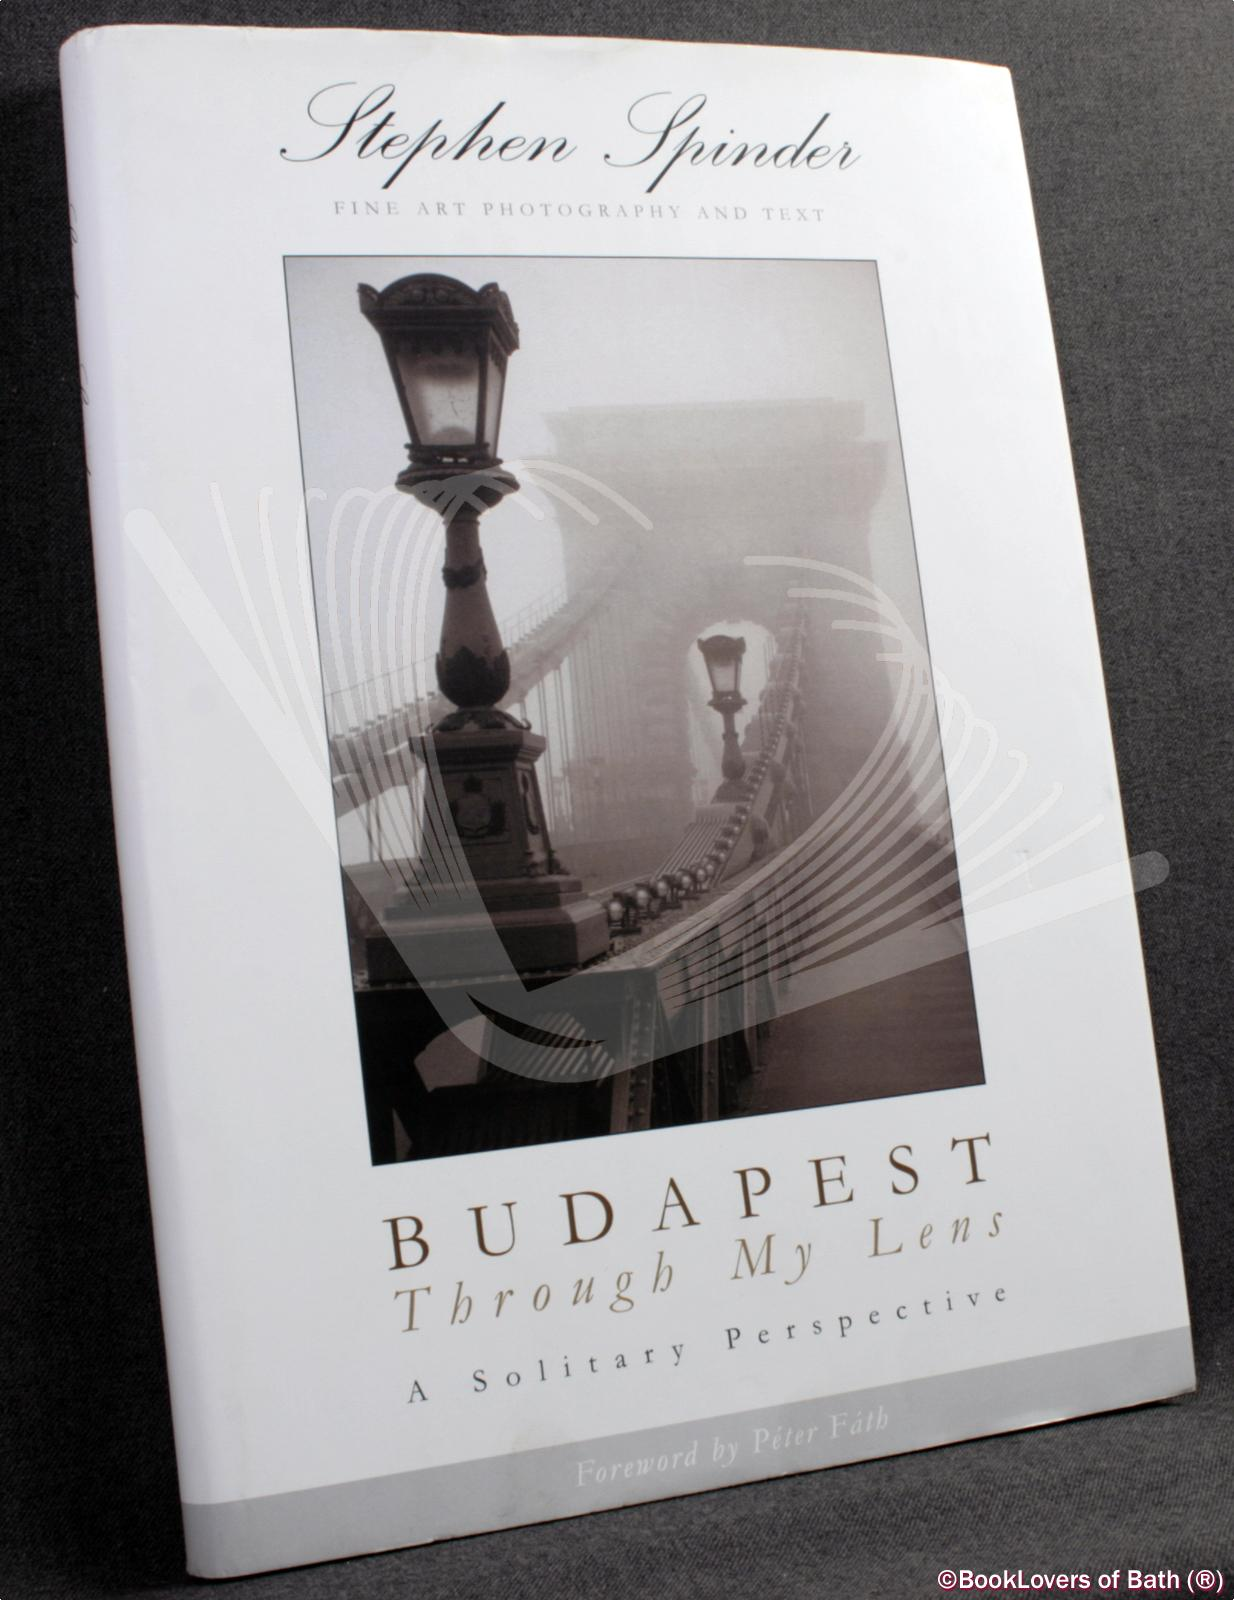 Budapest Through My Lens: A Solitary Perspective - Stephen Spinder